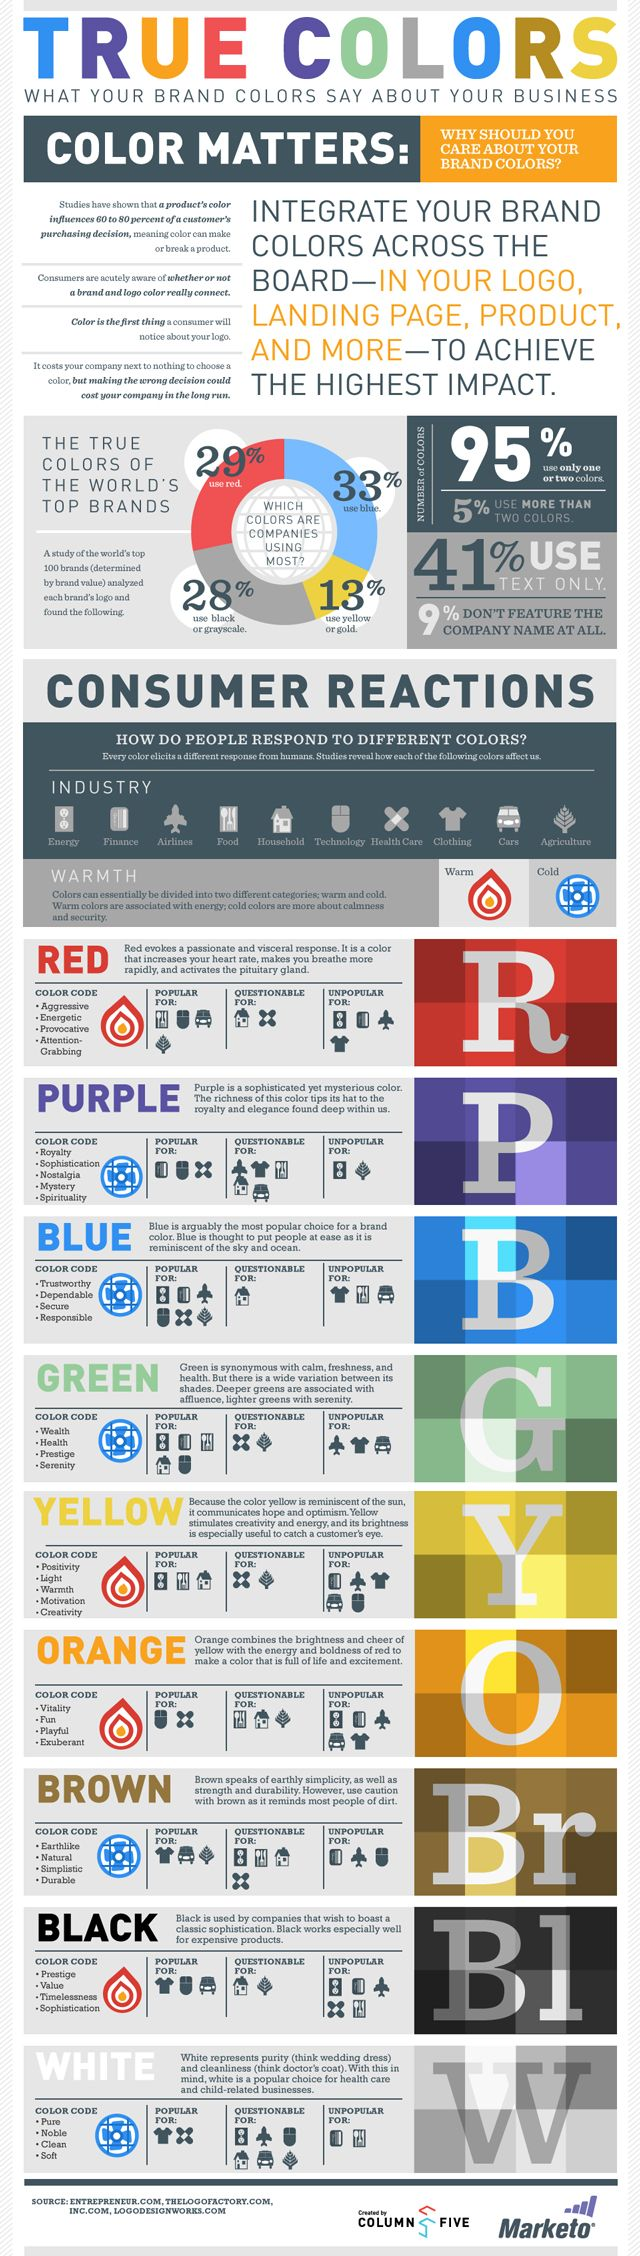 True Colors: What You Brand Colors Say About Your Business image Marketo true colors business2community full